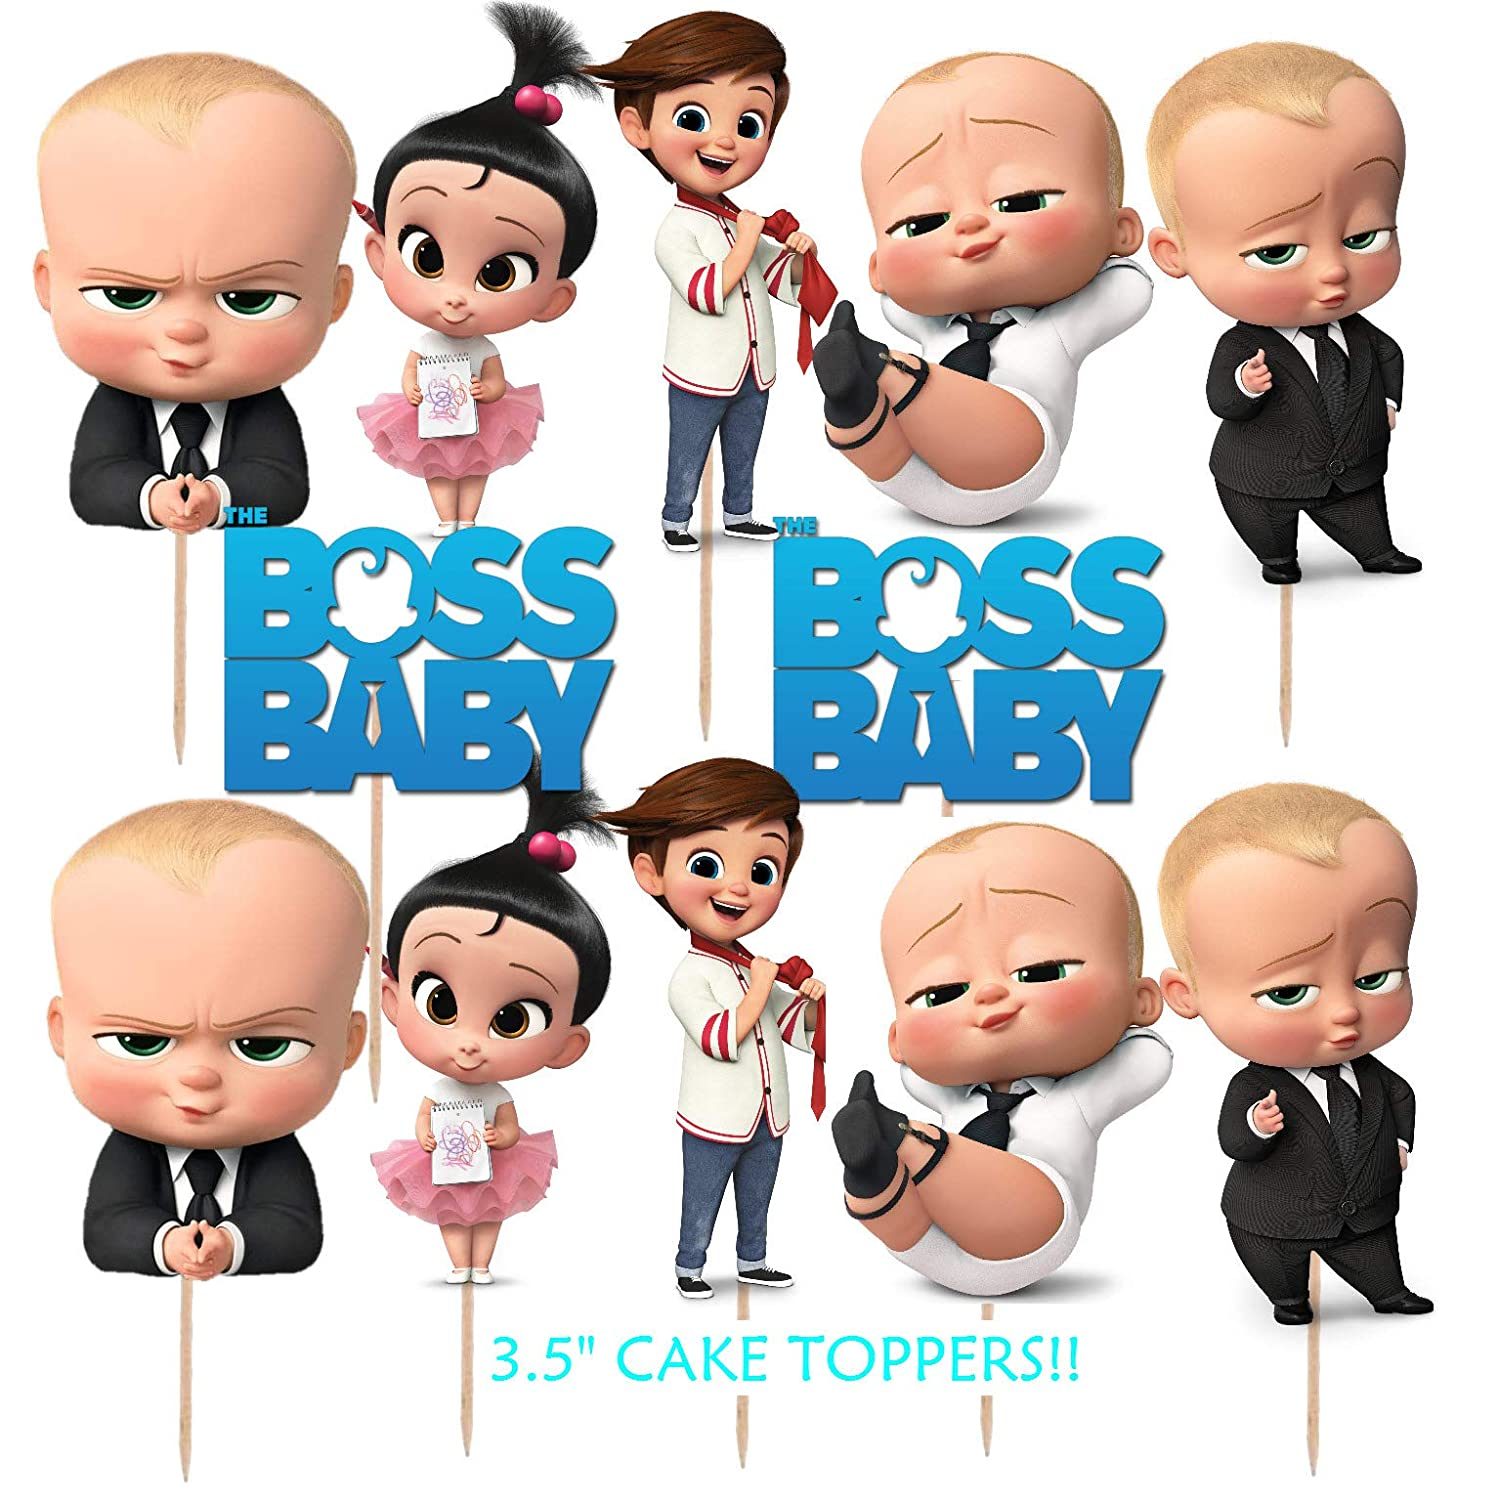 image relating to Boss Baby Printable named 24Laptop Contemporary Manager Kid Cupcake Cup Cake Topper Toppers Occasion Elements Decorations Balloon